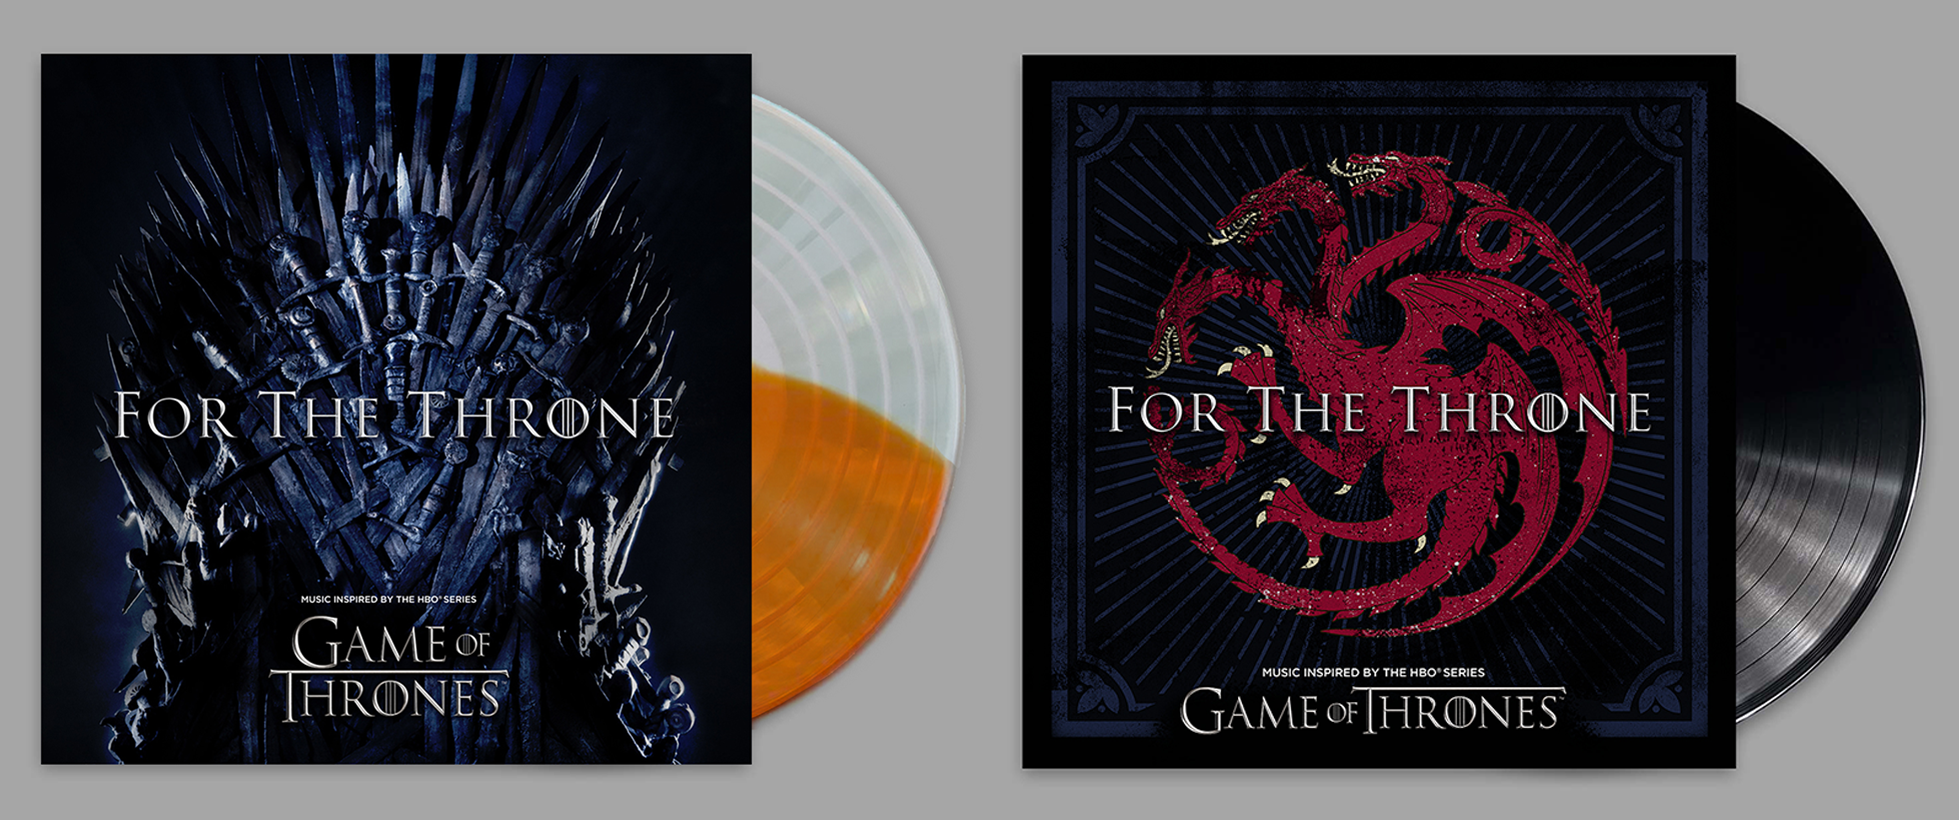 game-of-thrones-hbo-serie-vinil